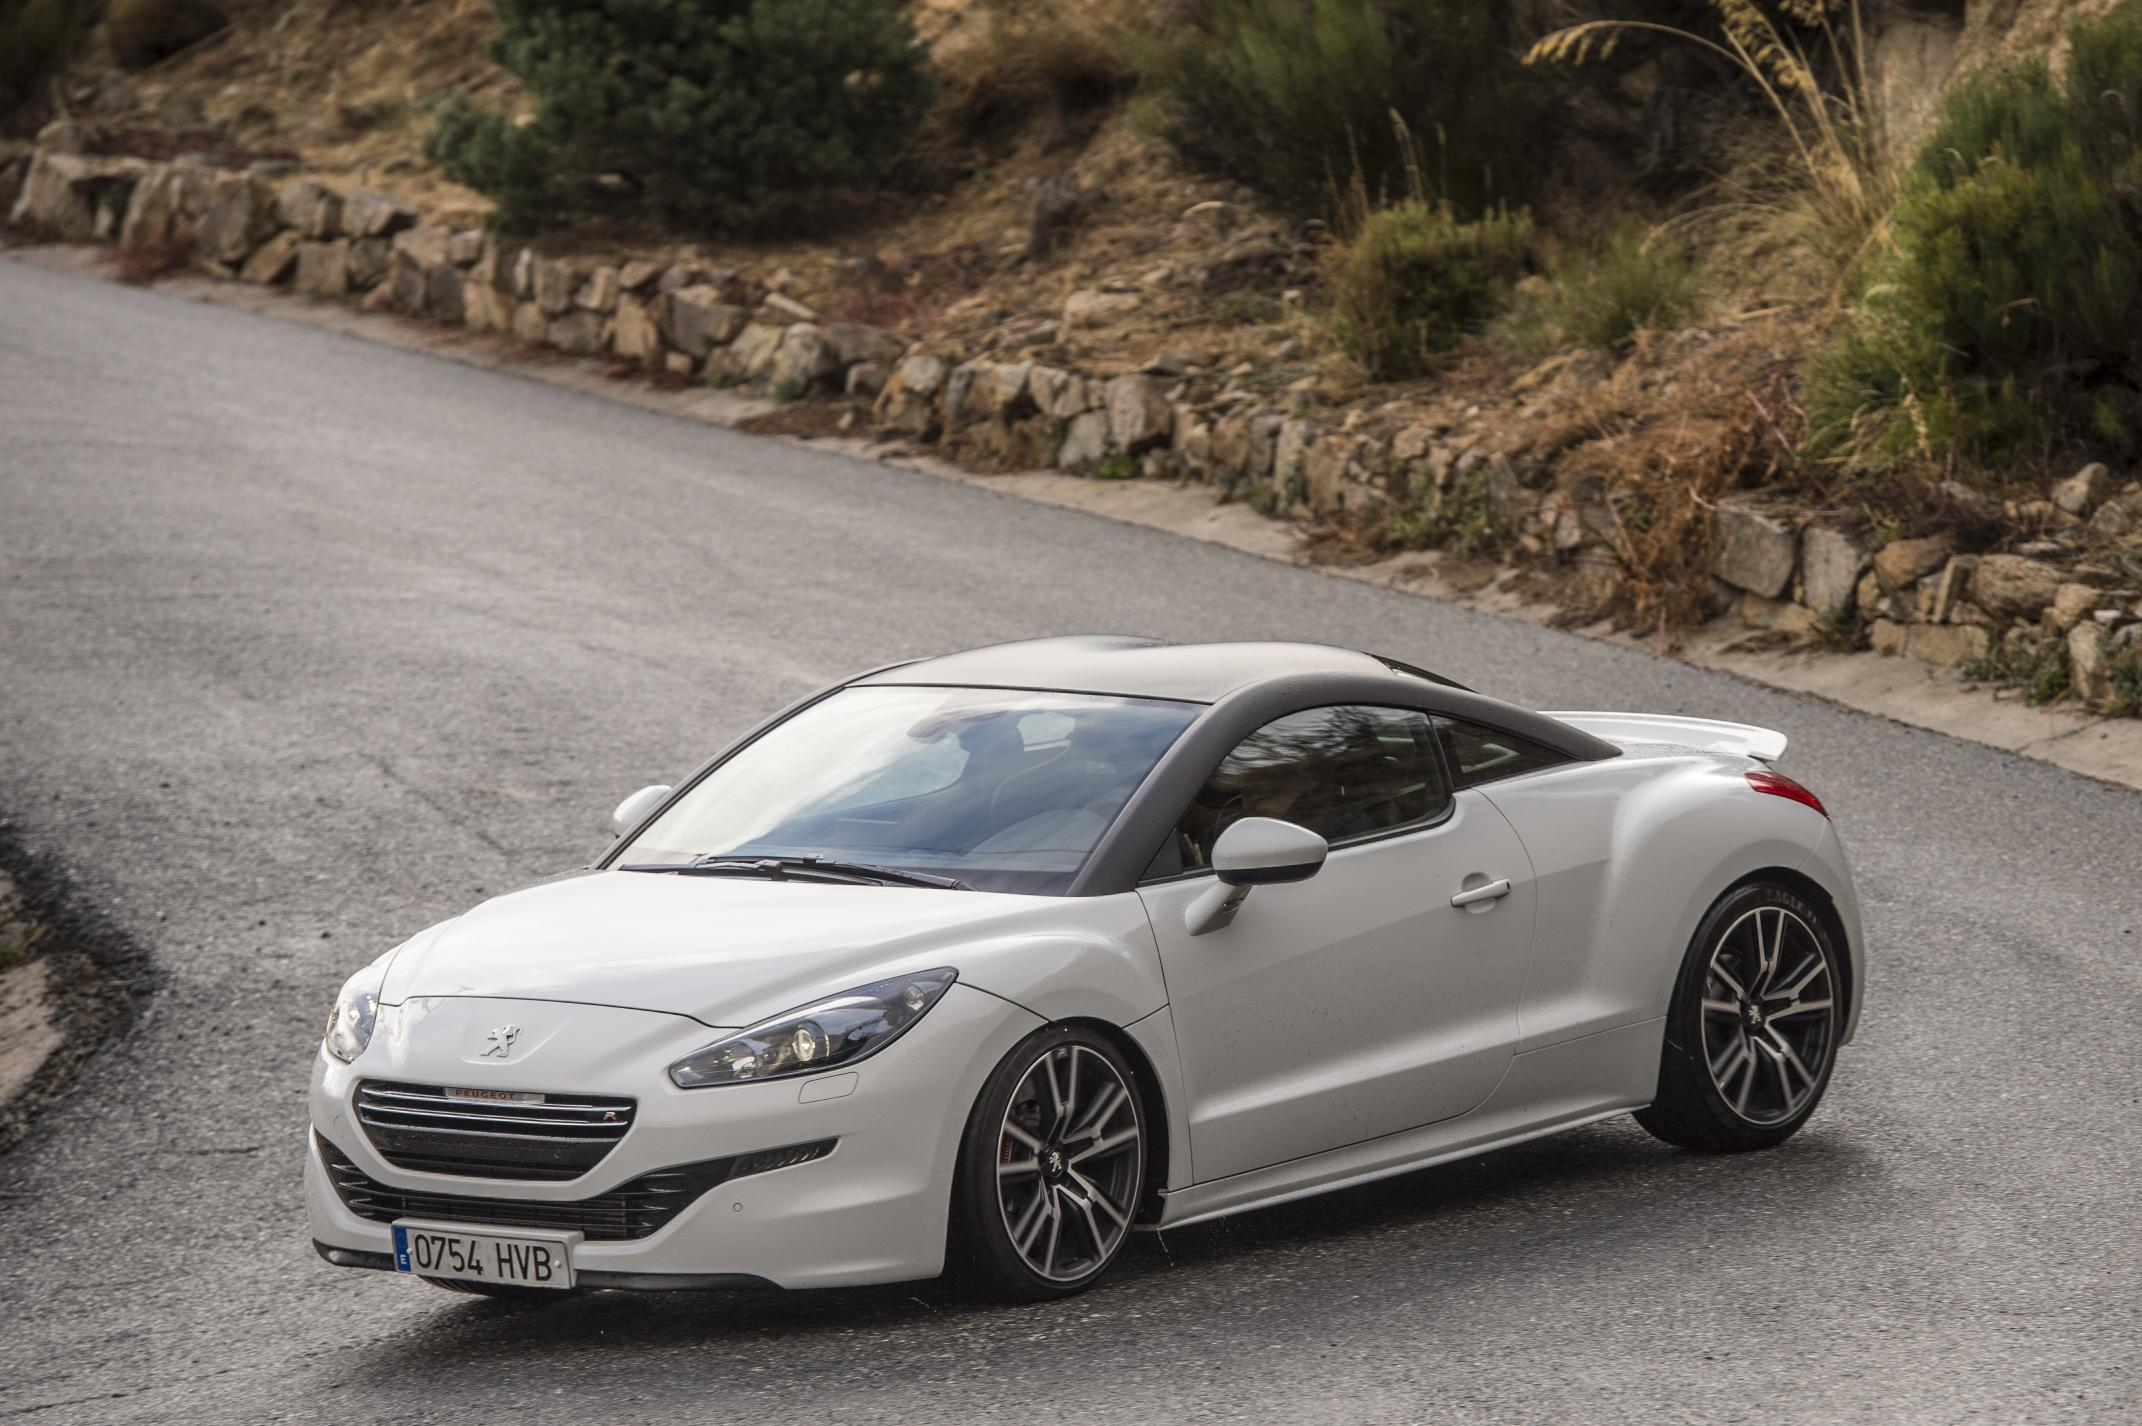 peugeot rcz 2015 wallpaper